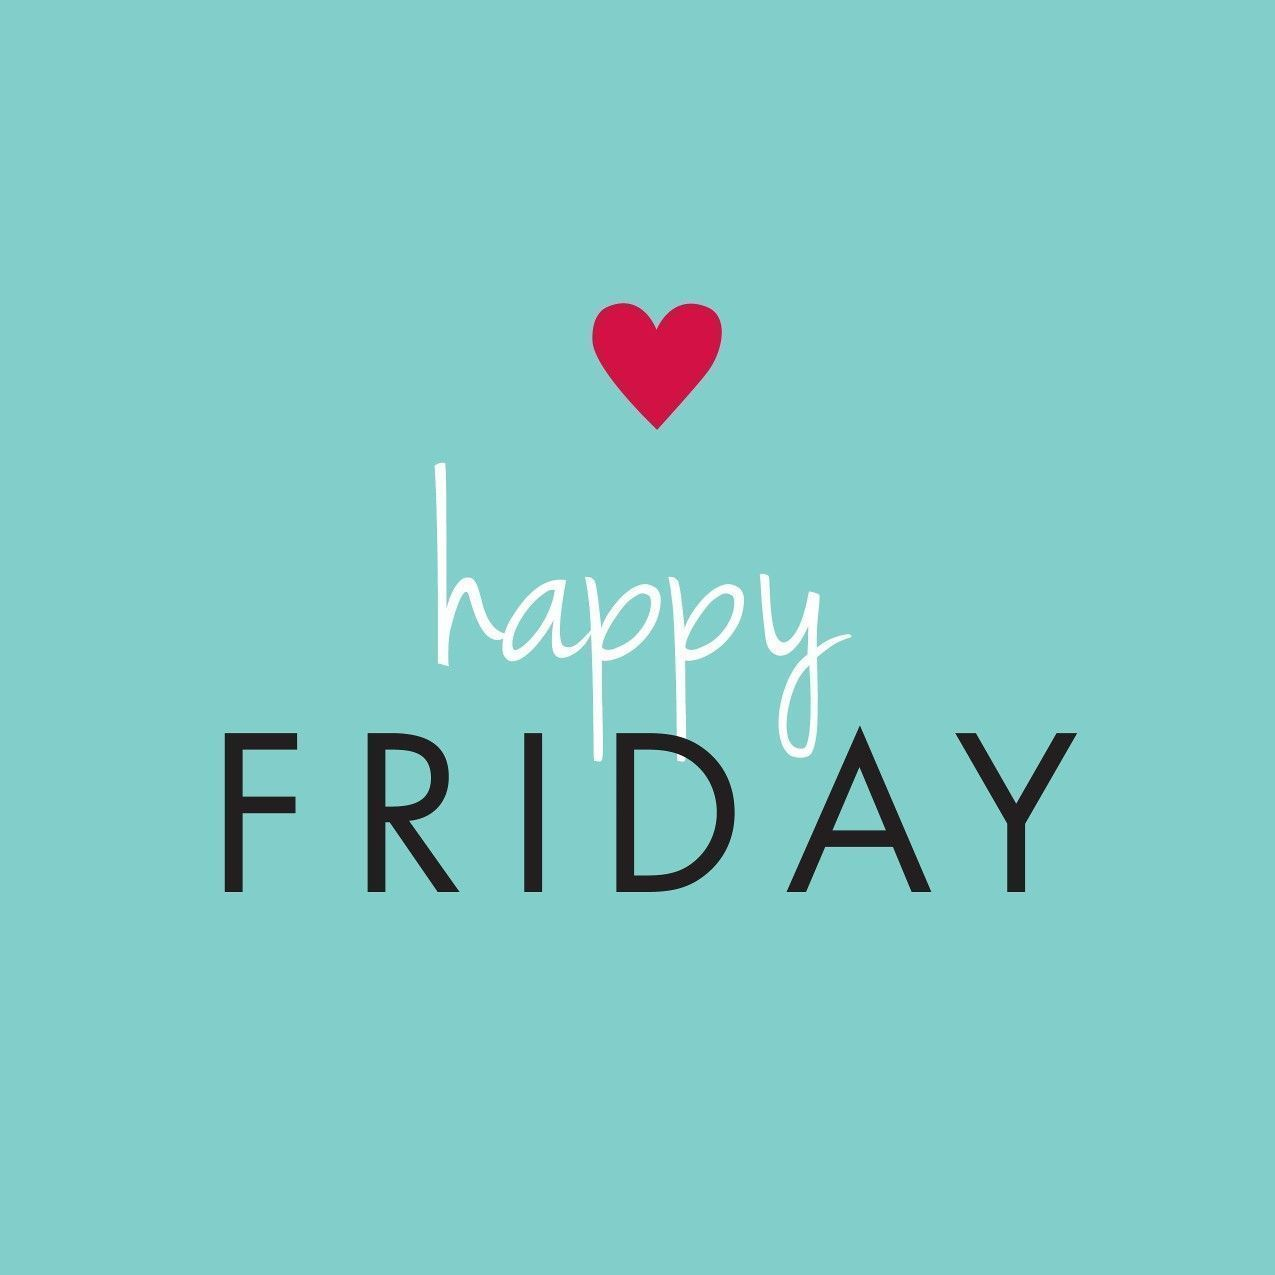 Happy Friday Quotes Positivity | Happy Friday happy friday quotes positivity ~ happy friday | happy friday